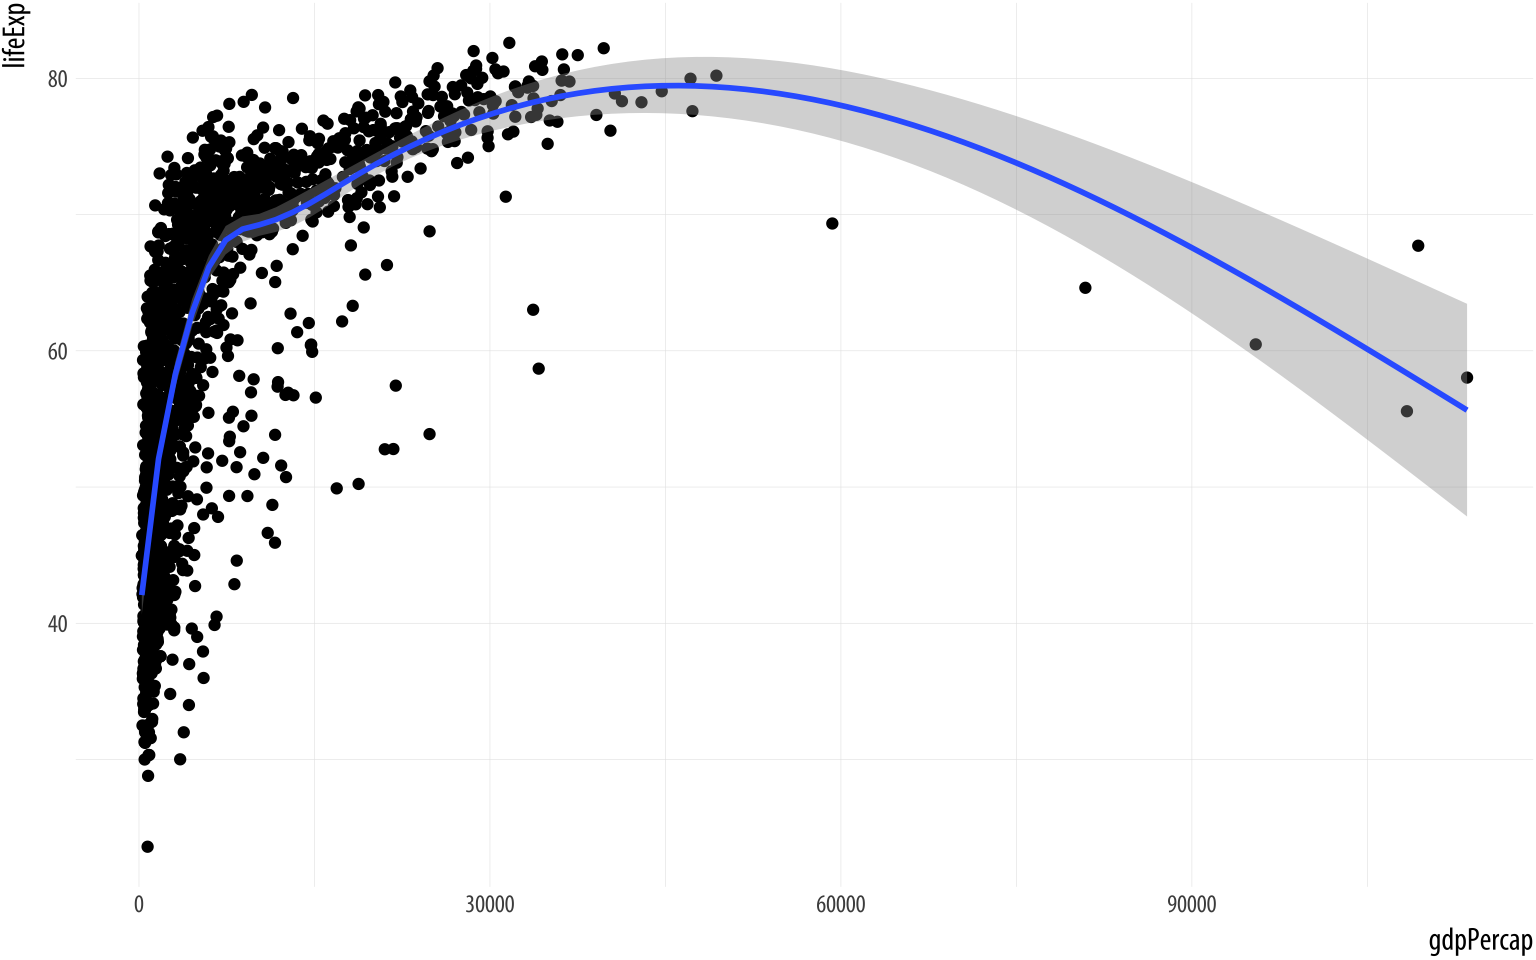 Life Expectancy vs GDP, showing both points and a GAM smoother.